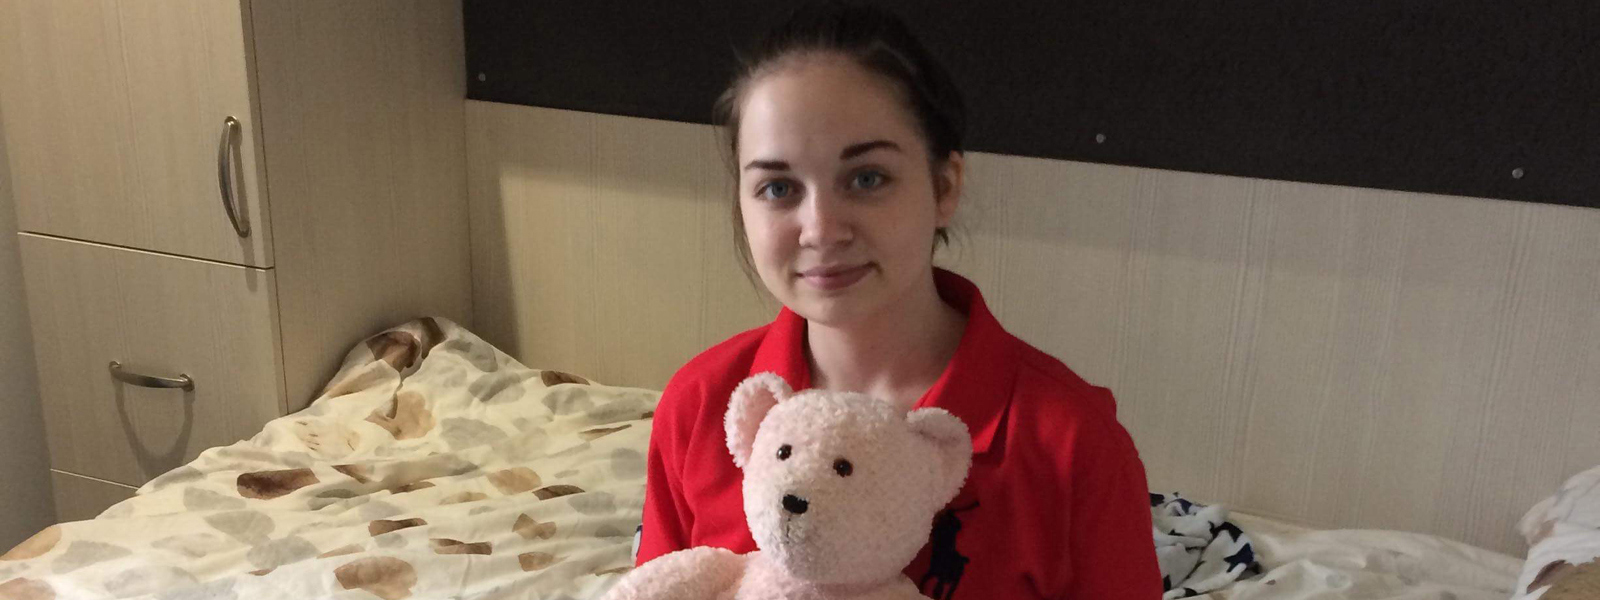 Charlotte sits on her bed at University holding a teddy bear